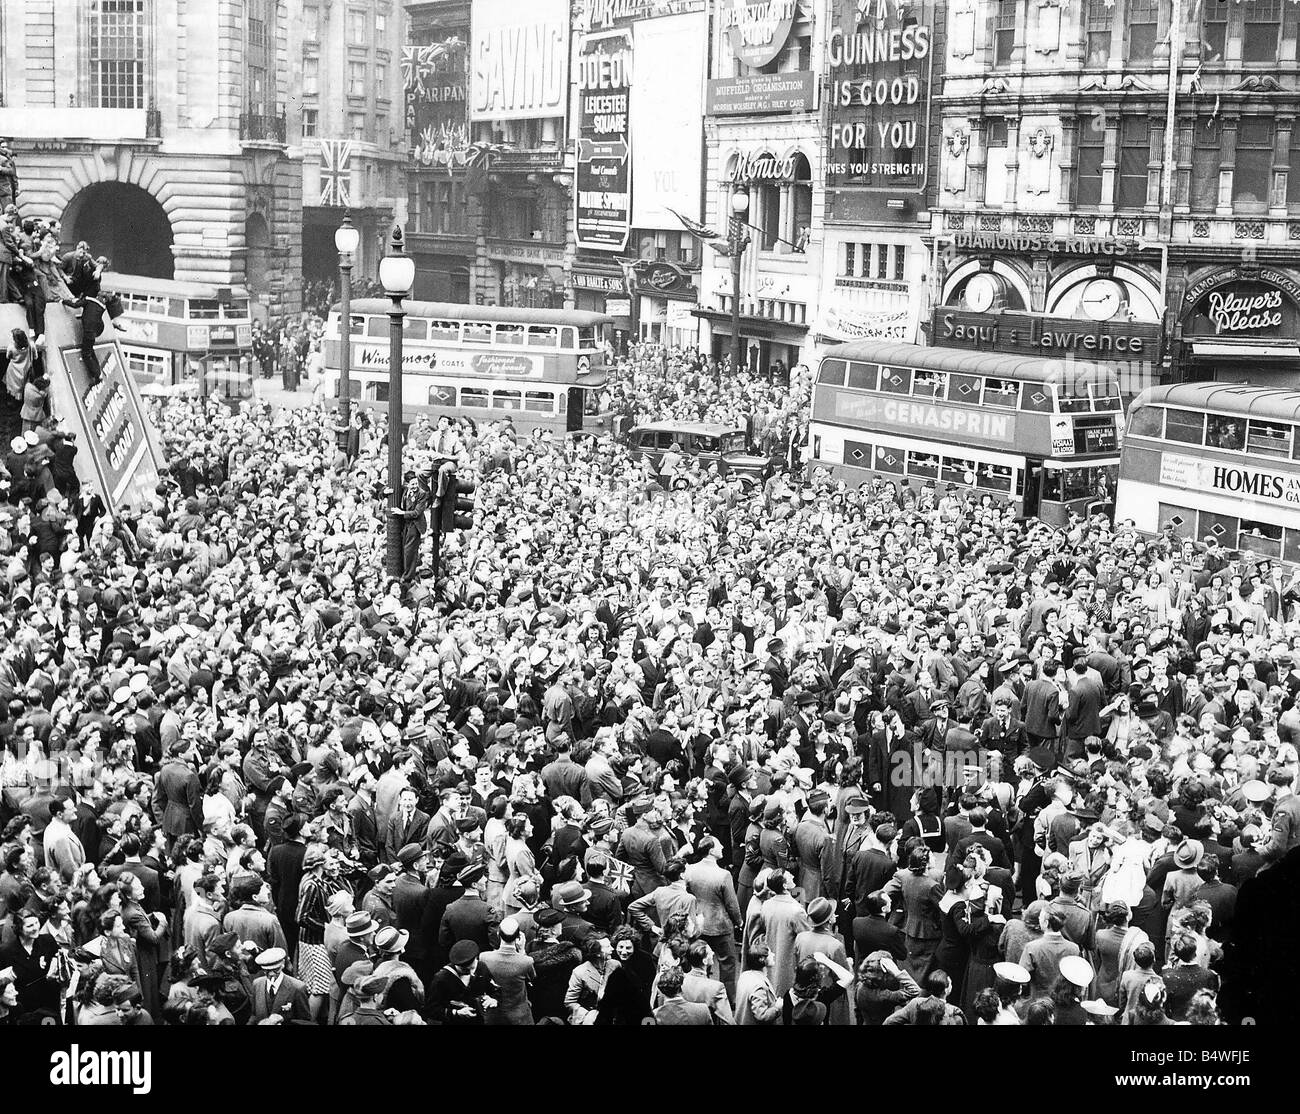 Piccadilly Circus London at the end of World War 2 1945 - Stock Image